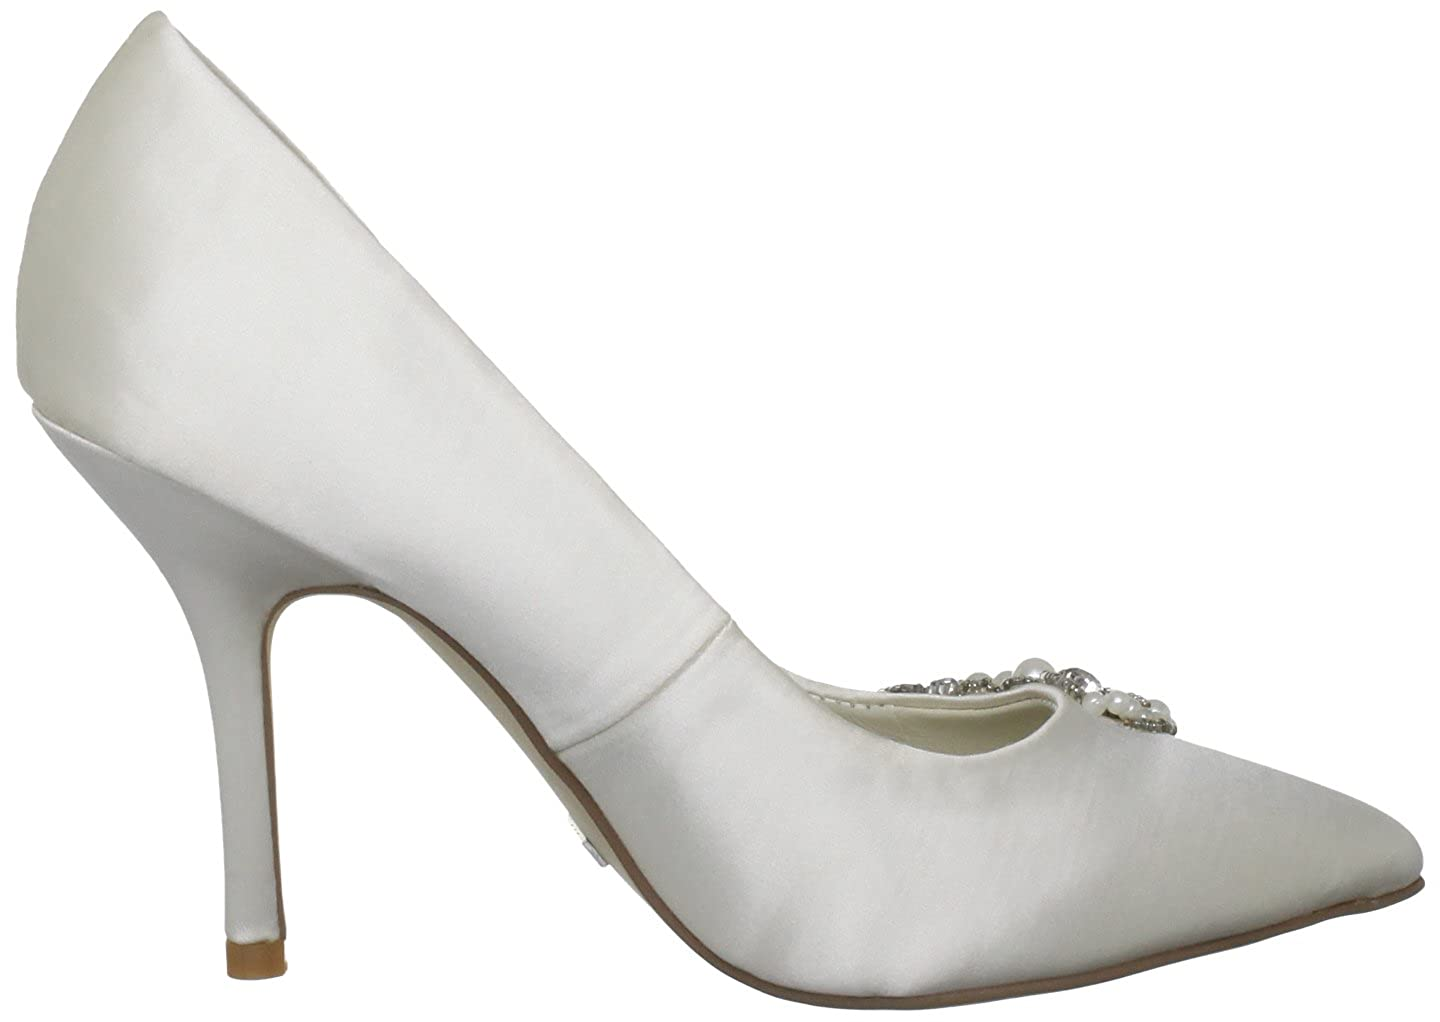 Menbur Wedding Pattye Pattye Pattye 5125 Damen Klassische Pumps fec4ad